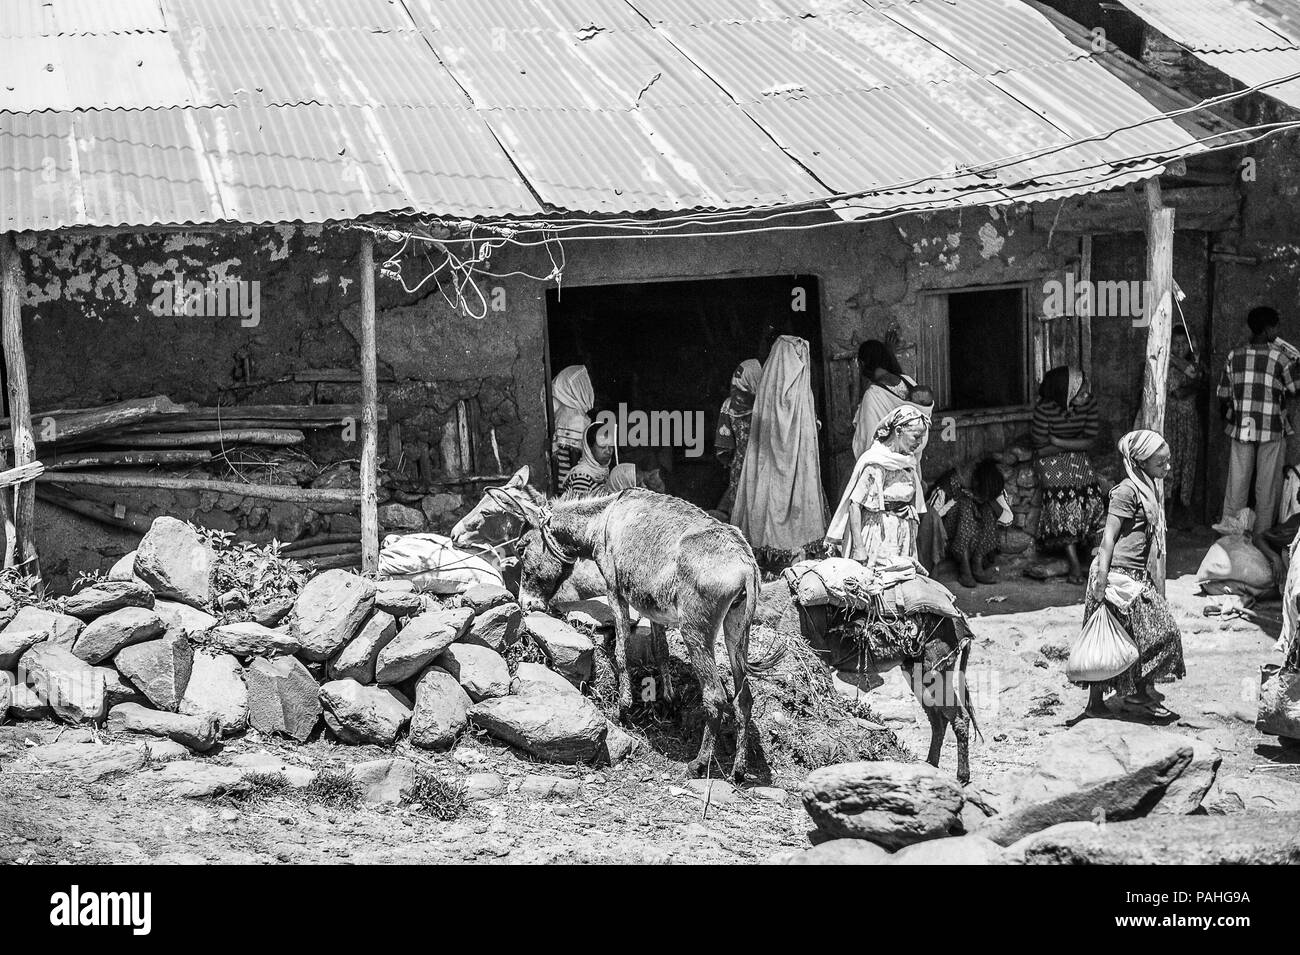 OMO, ETHIOPIA - SEPTEMBER 19, 2011: Unidentified Ethiopian people and donkeys in the street. People in Ethiopia suffer of poverty due to the unstable  Stock Photo